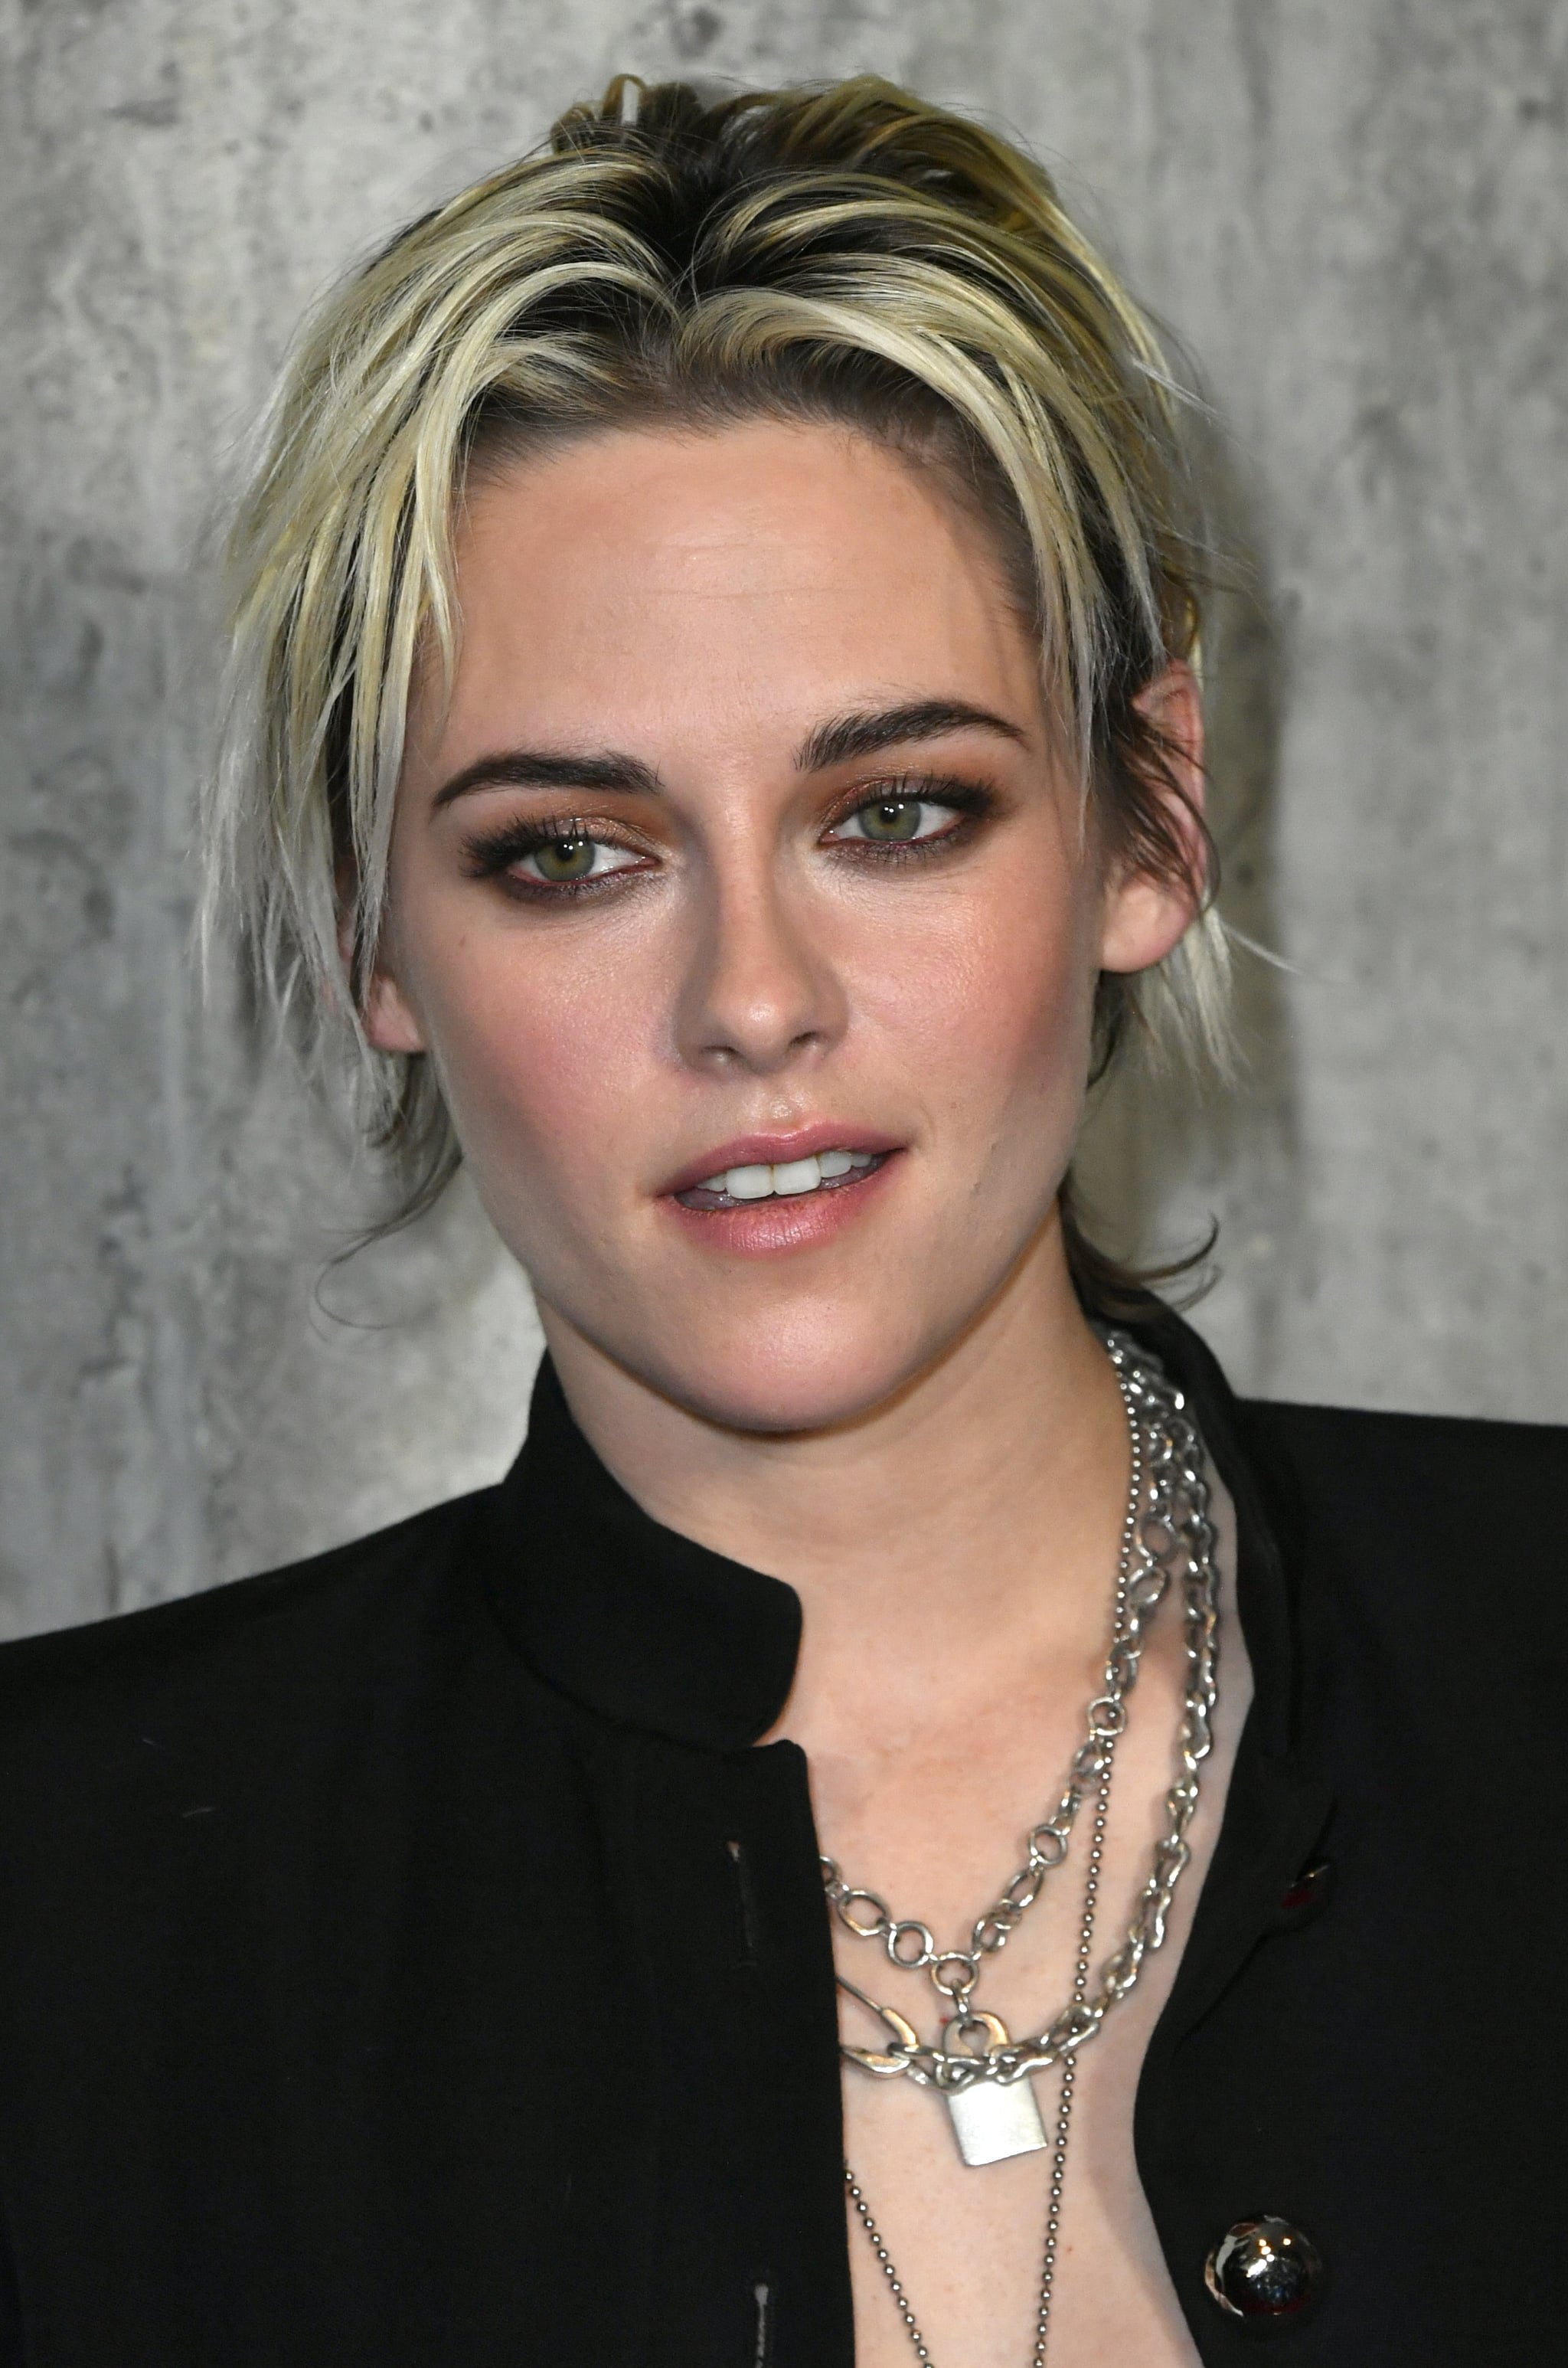 Makeup Beauty Hair Skin Yep Kristen Stewart S New Blond Hair Color Is A Total Mess And That S The Point Popsugar Beauty Middle East Photo 3